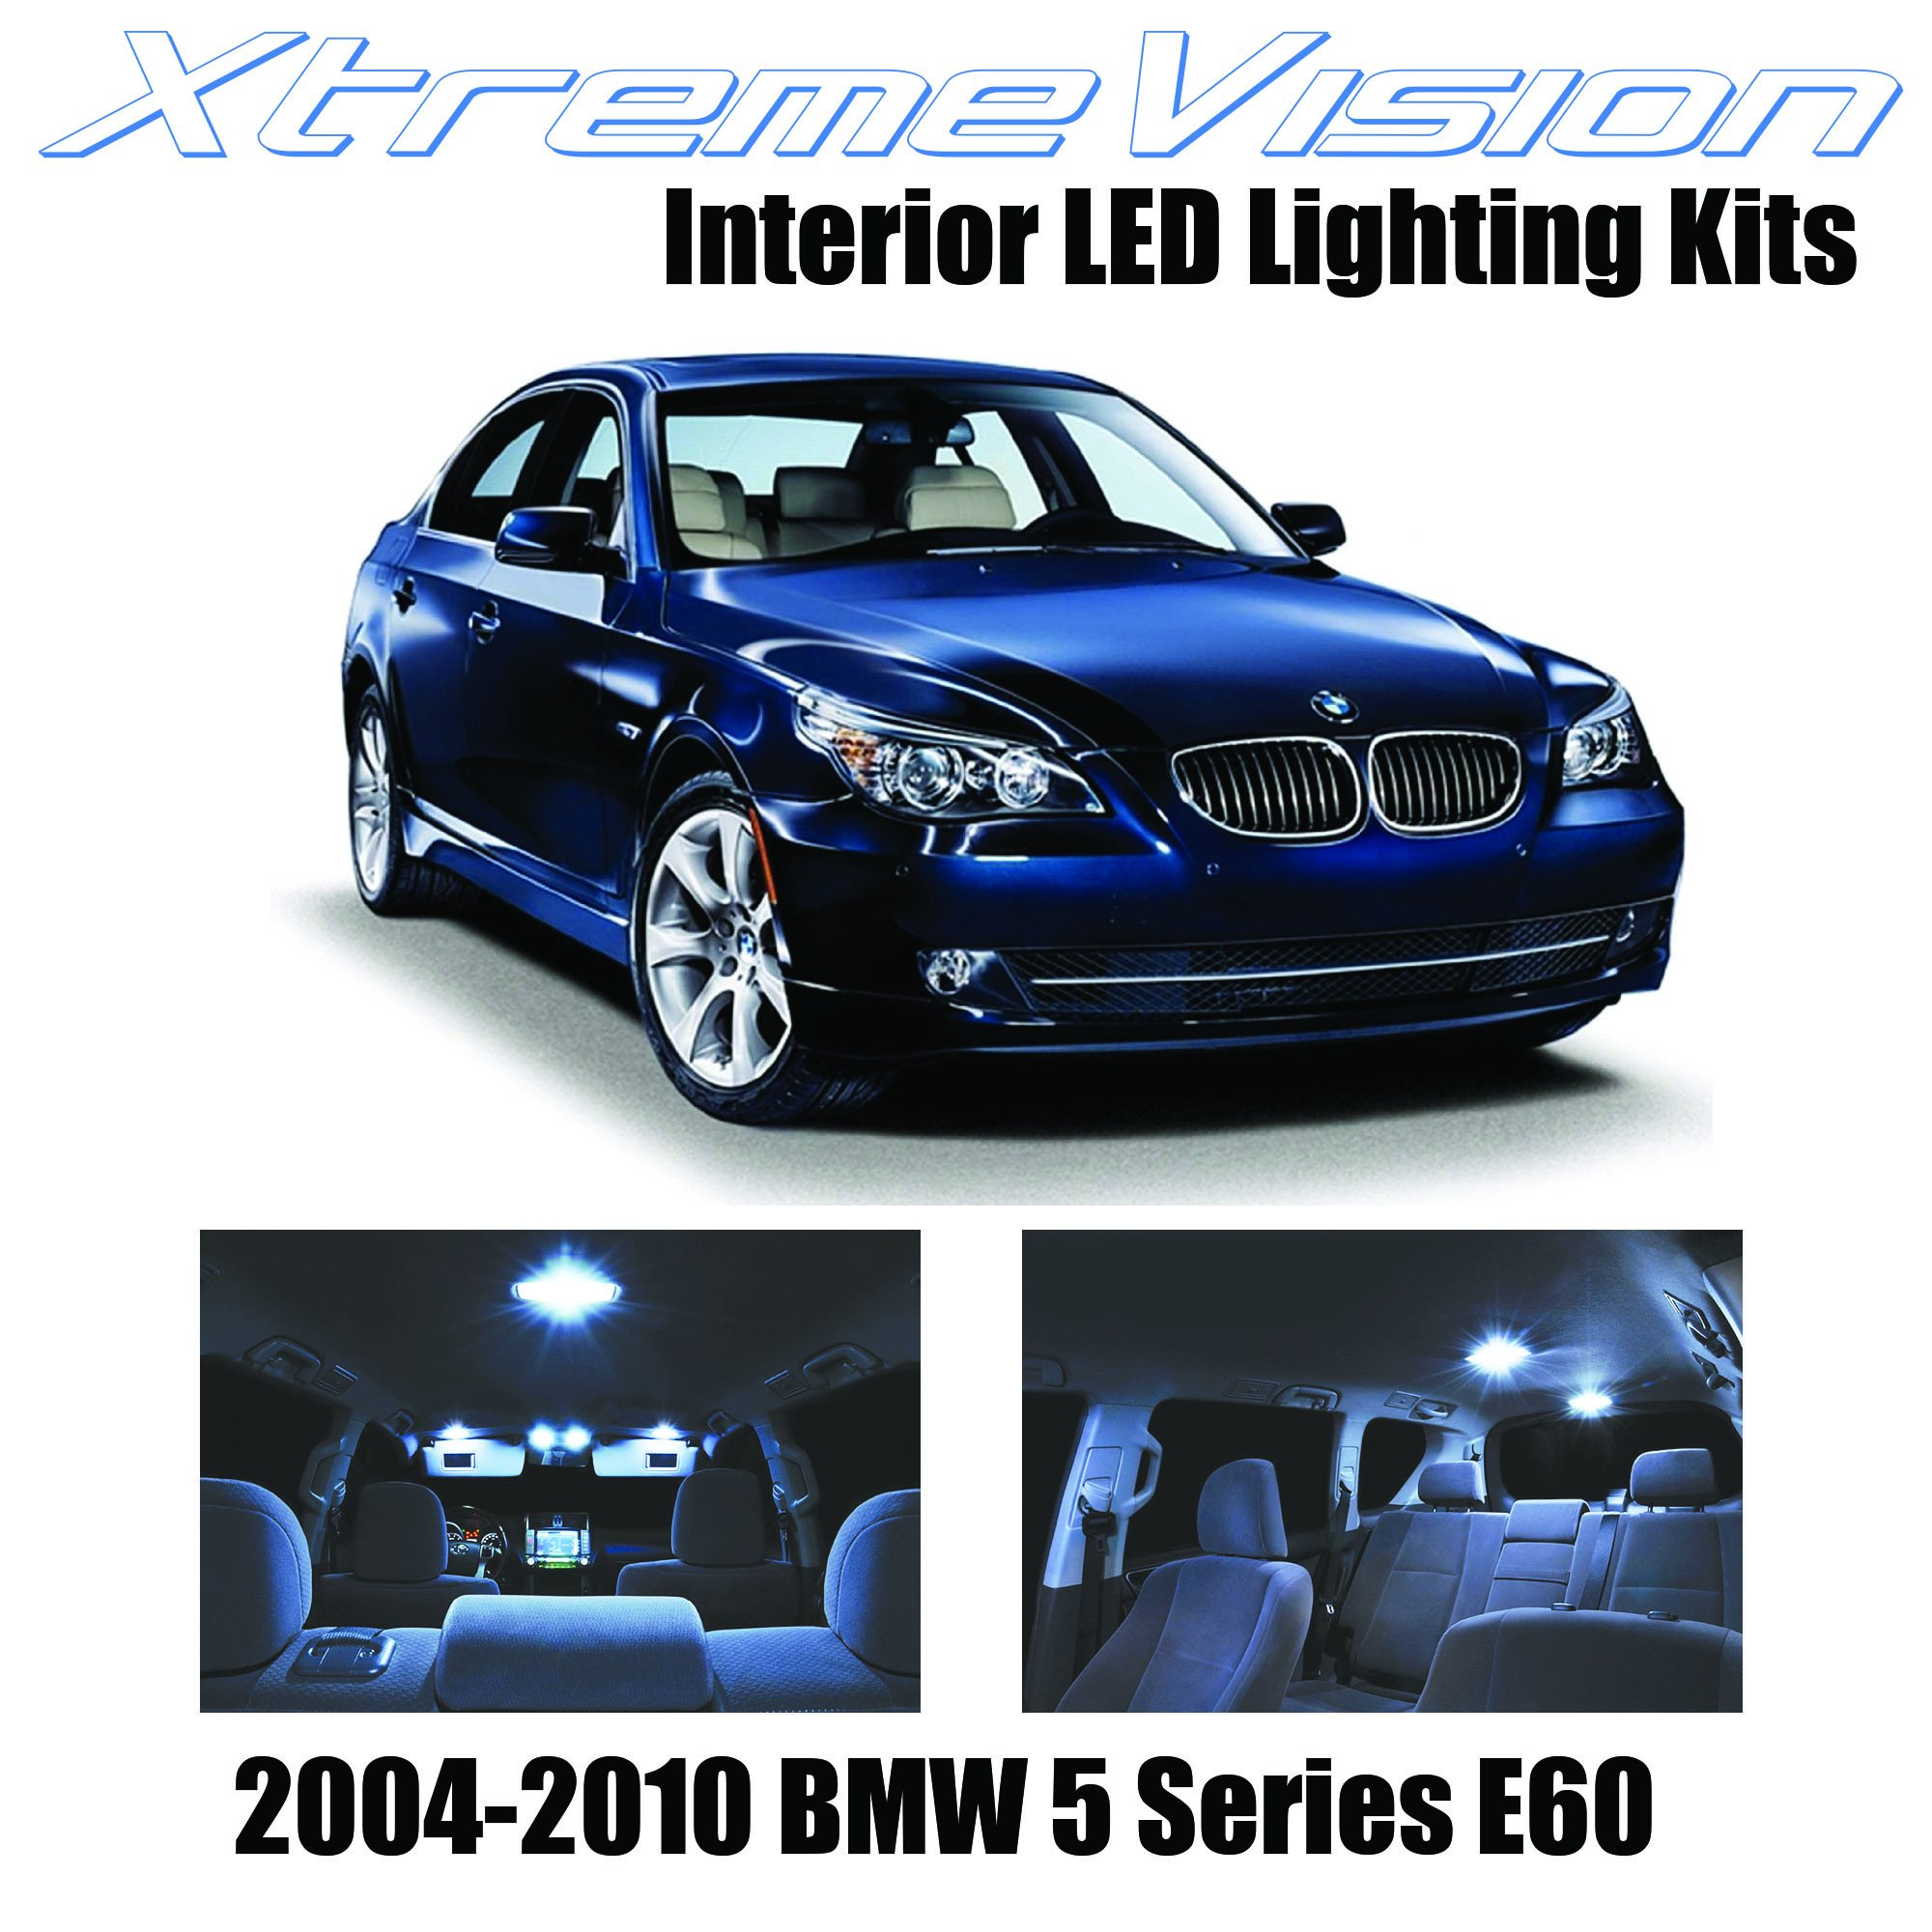 Xtremevision Interior LED for BMW 5 Series E60 2004-2010 (17 Pieces) Cool White Interior LED Kit + Installation Tool